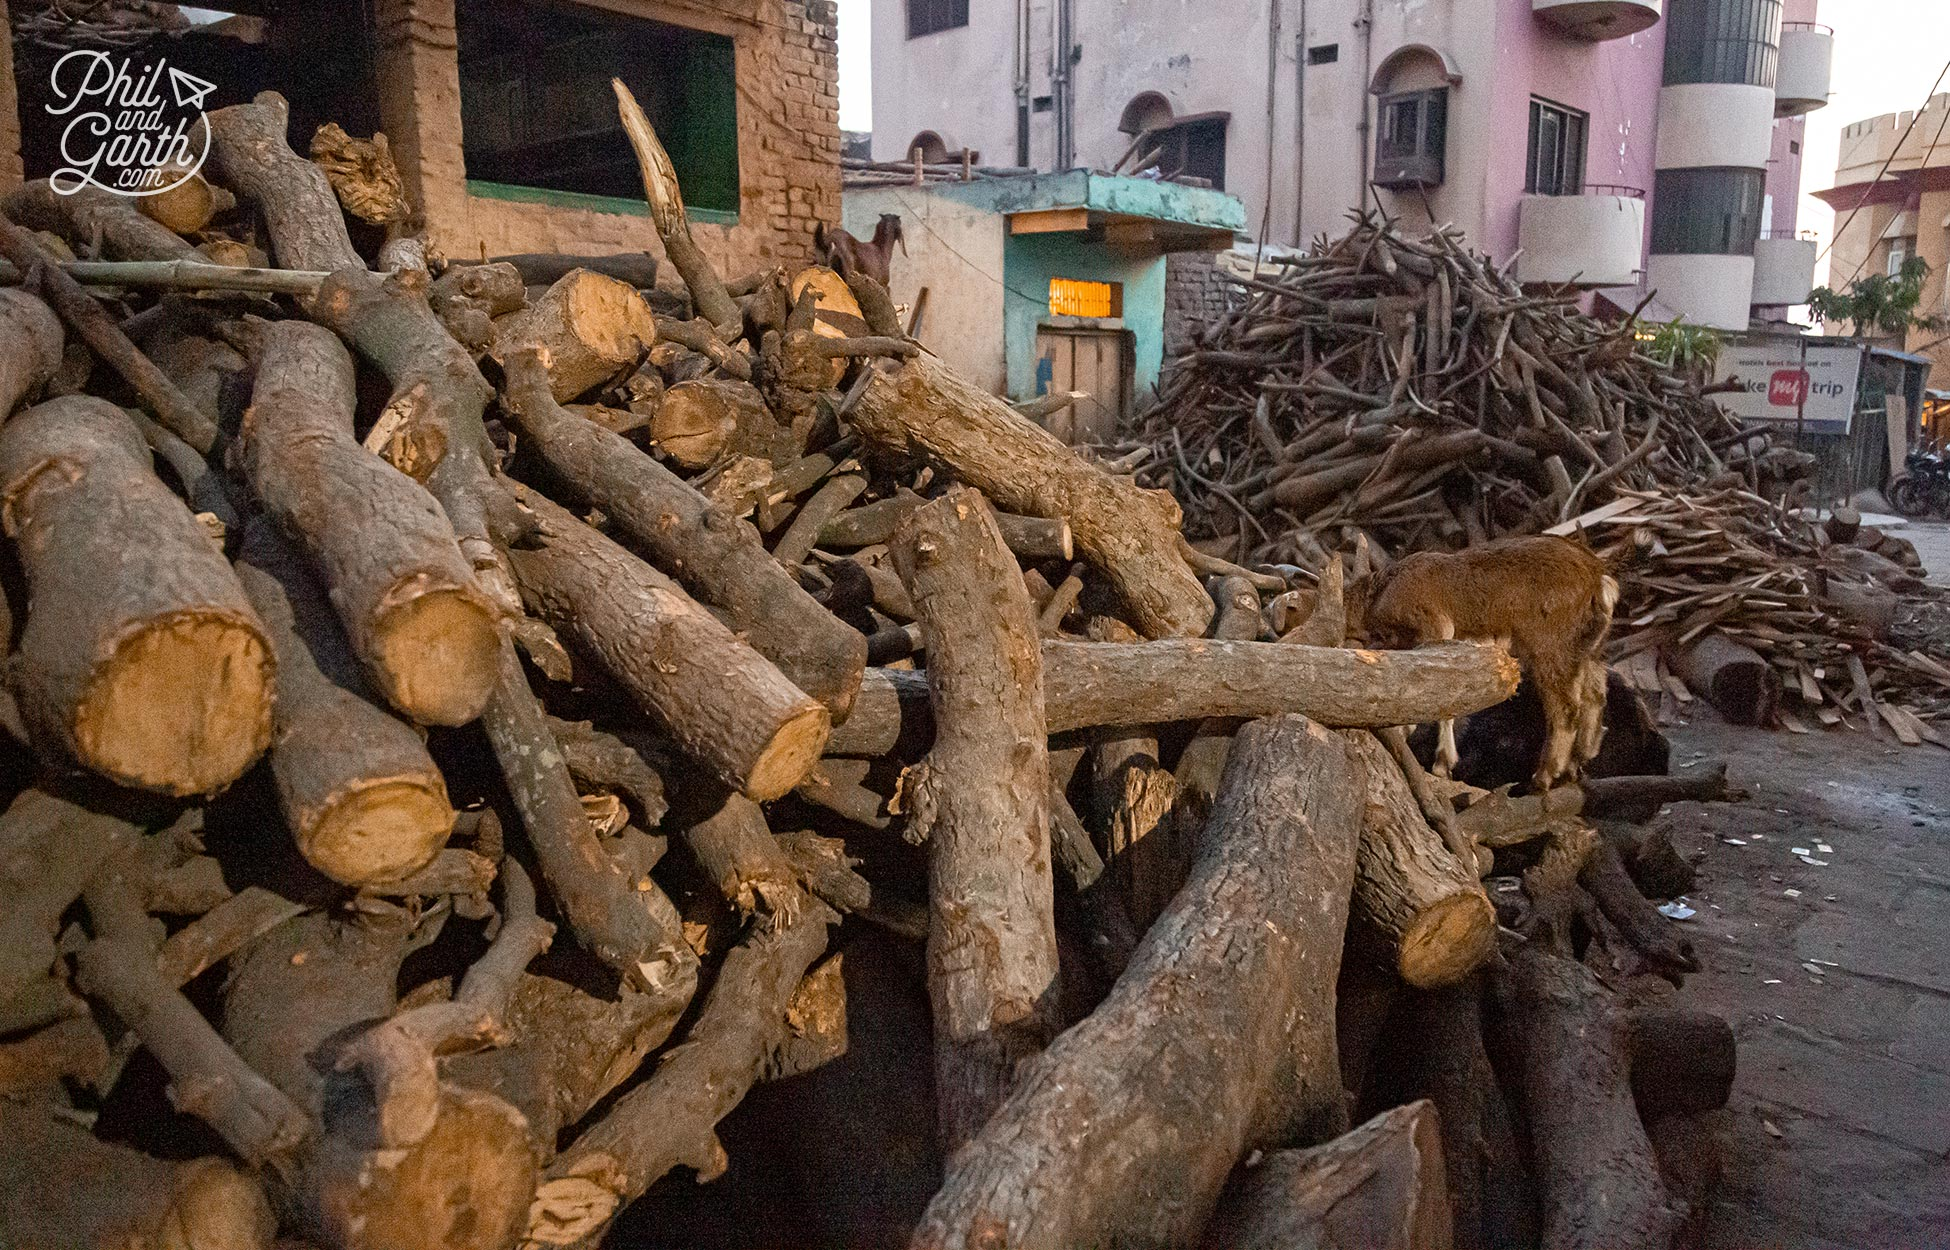 Piles of wood used for funeral pyres